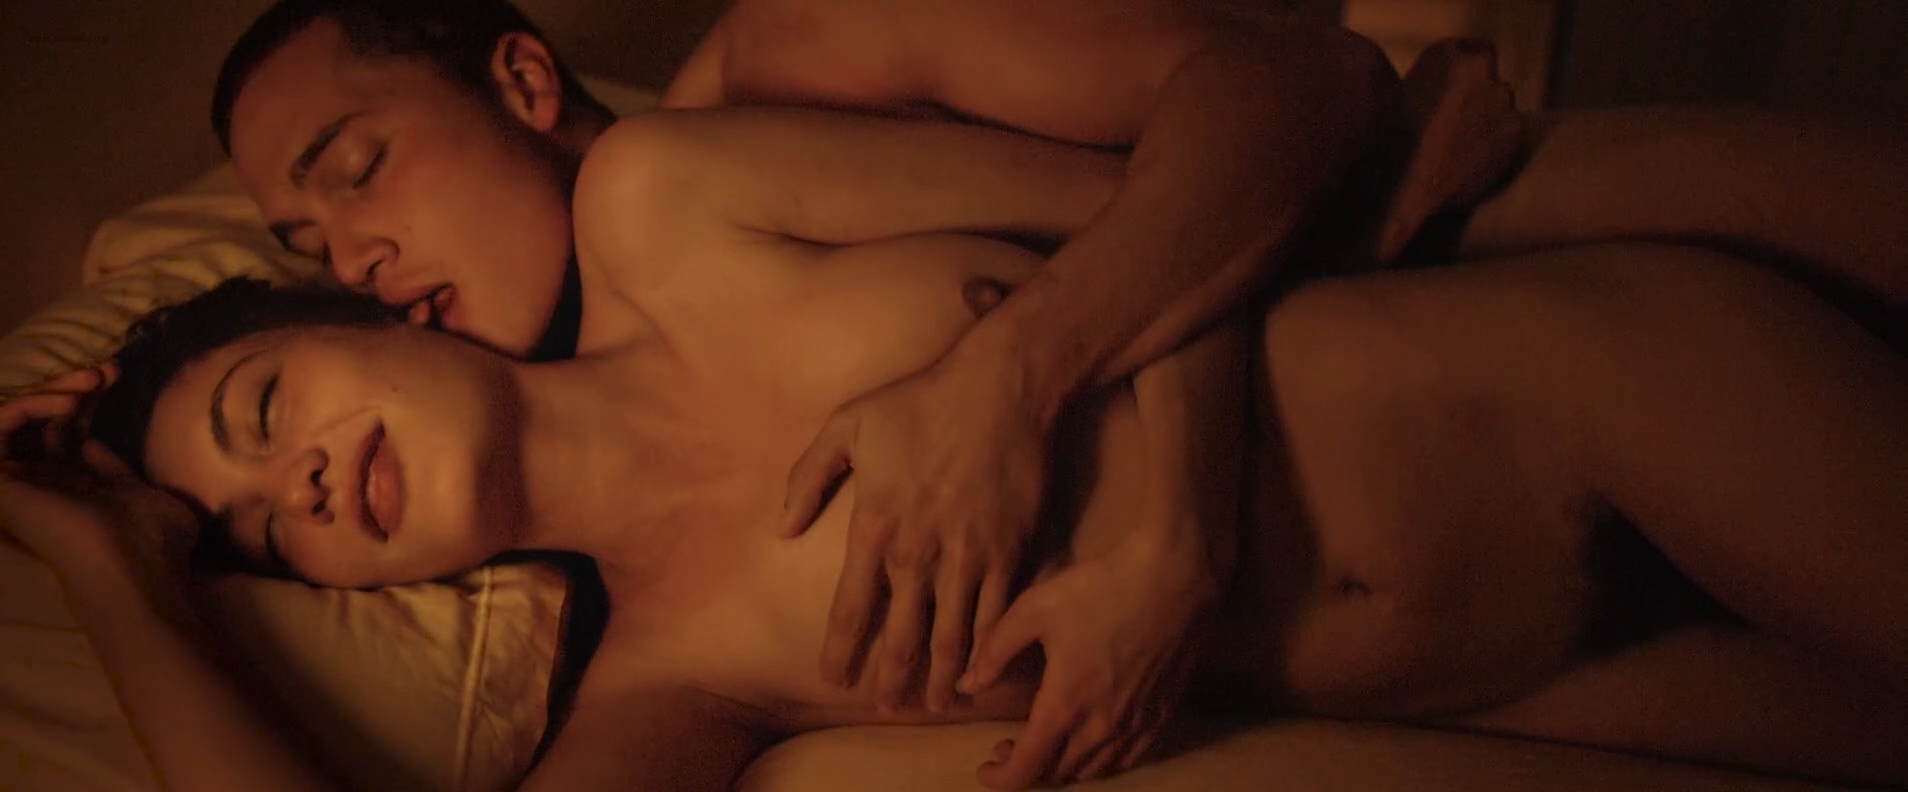 Aomi Muyock Nude Explicit Sex With Klara Kristin And Déborah Révy Nude Too  In Gaspar Noe S Love | Free Hot Nude Porn Pic Gallery